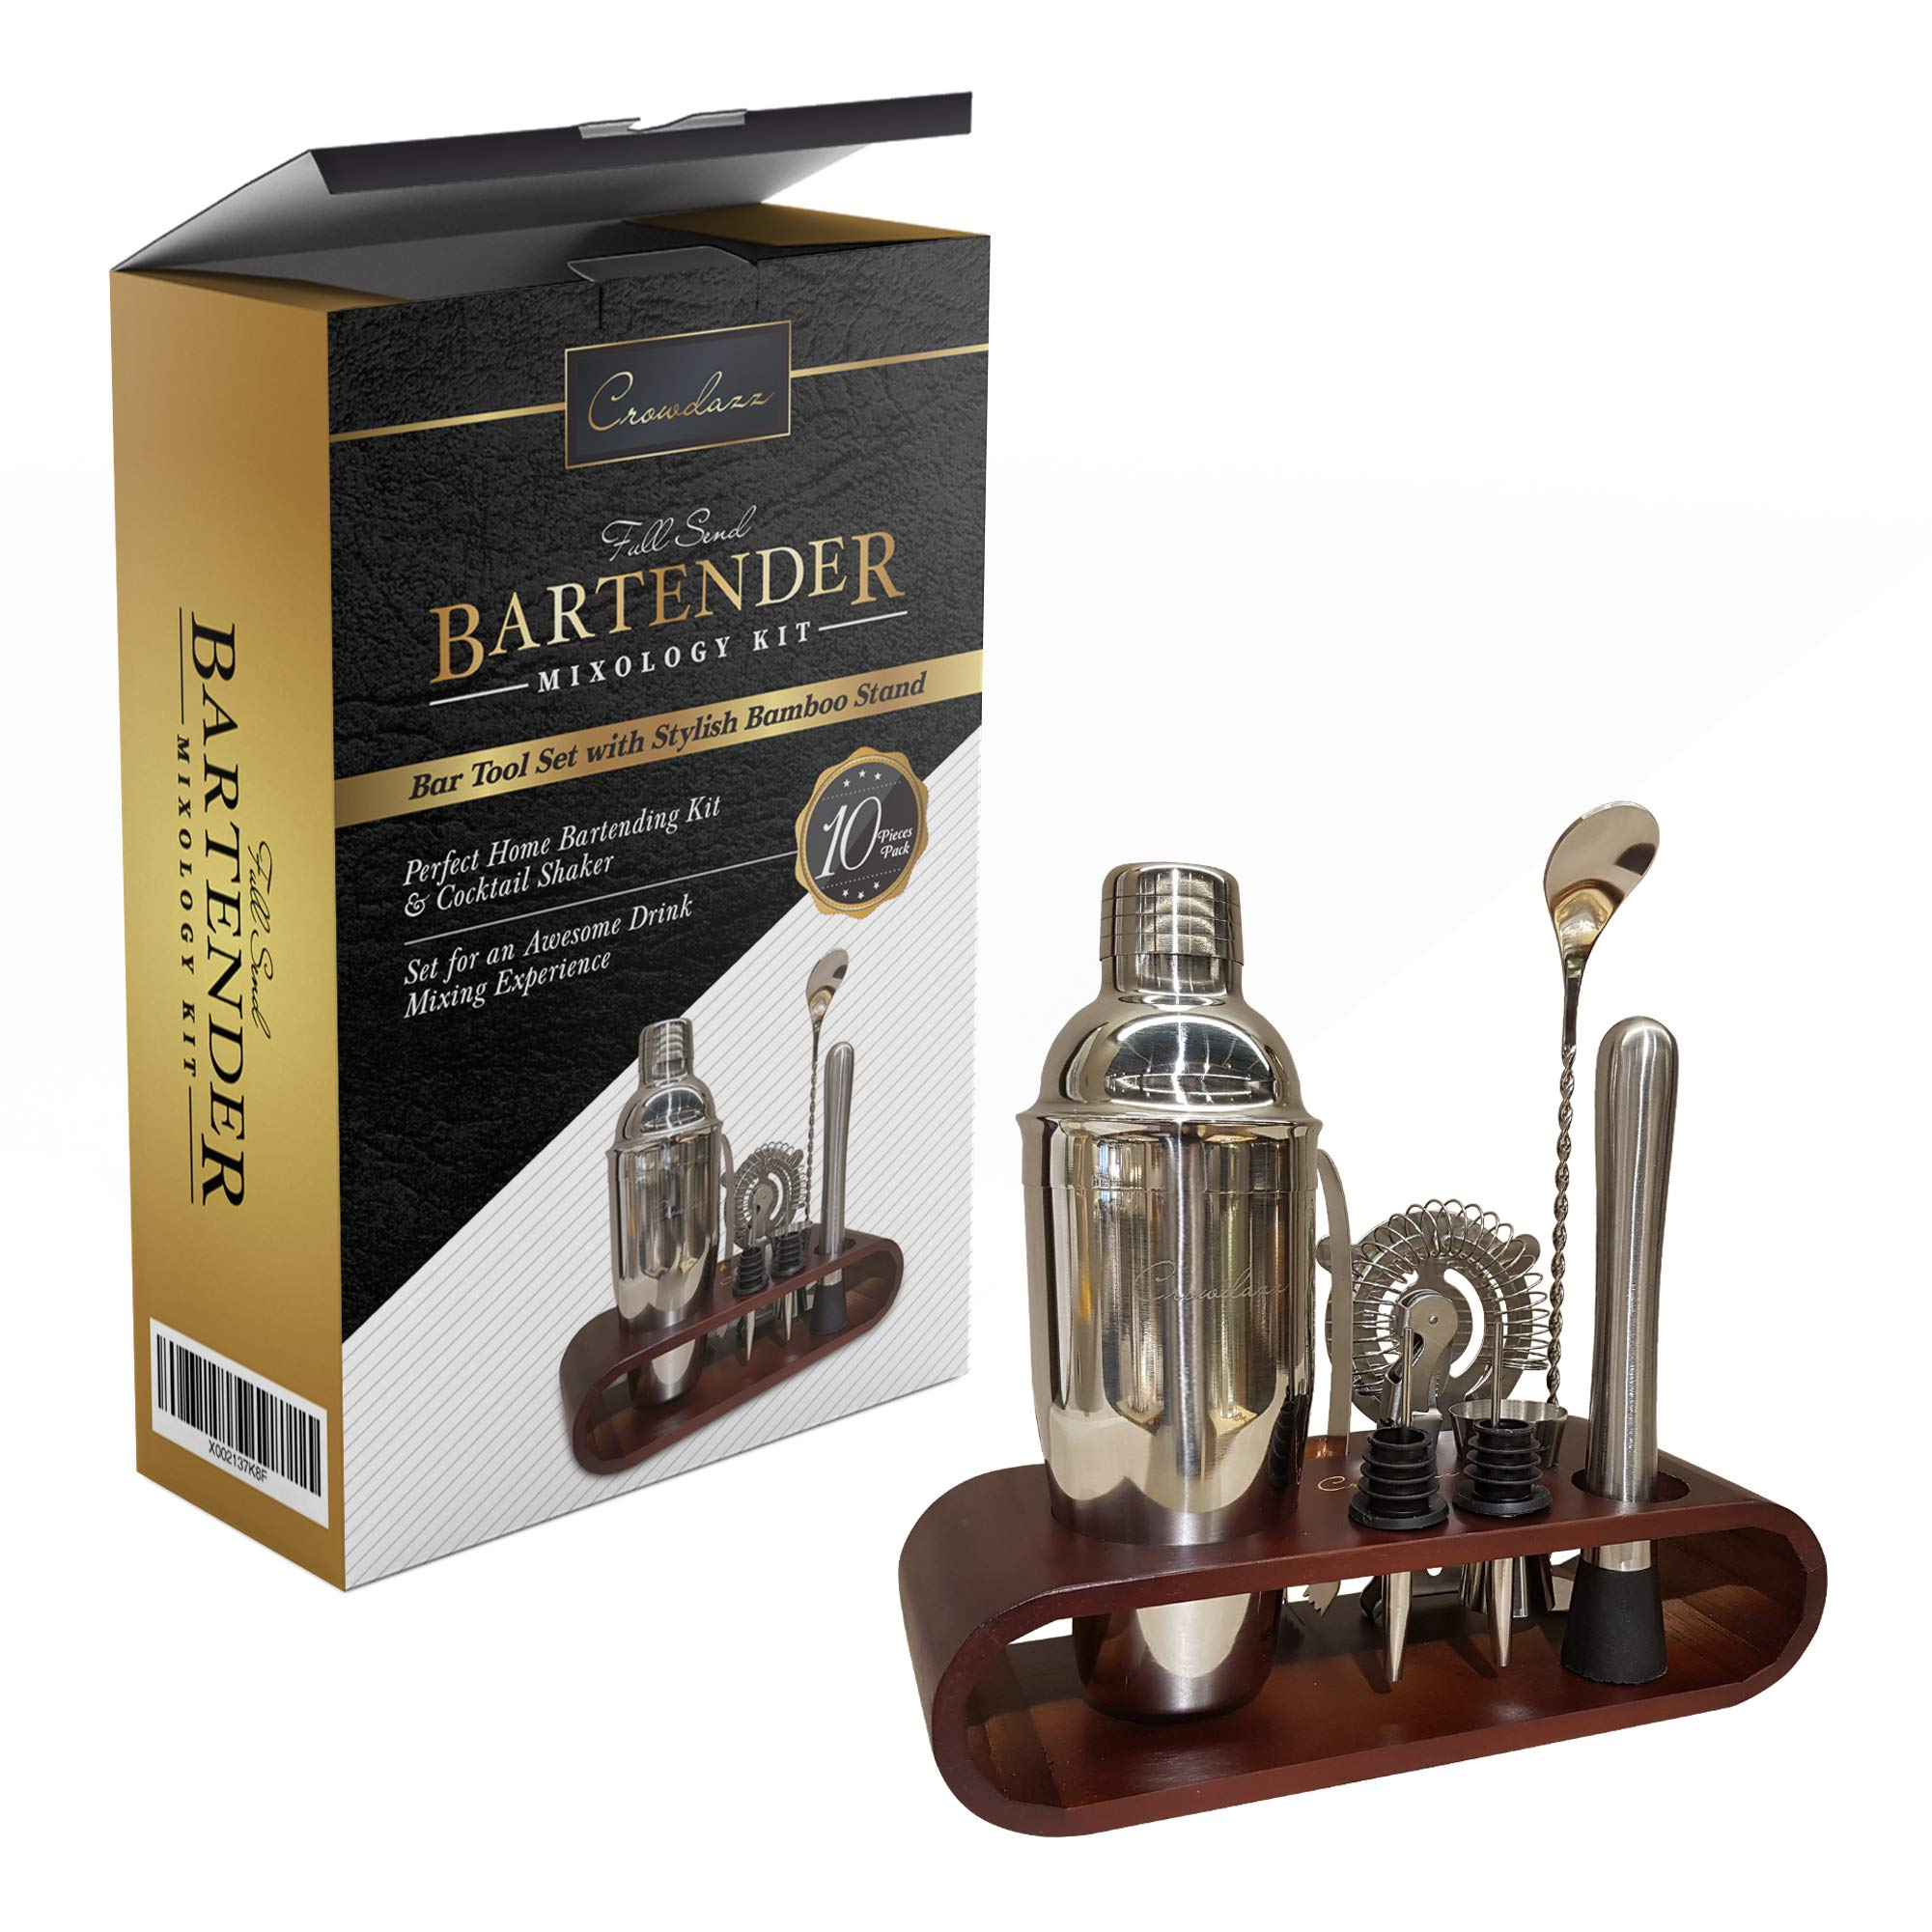 Bartender kit - cocktail shaker set by CROWDAZZ, supreme 10pcs bar tools for bartending. Highest quality mixology bartender kit with bamboo stand, mixology booklet. Shaker strainer jigger and more.